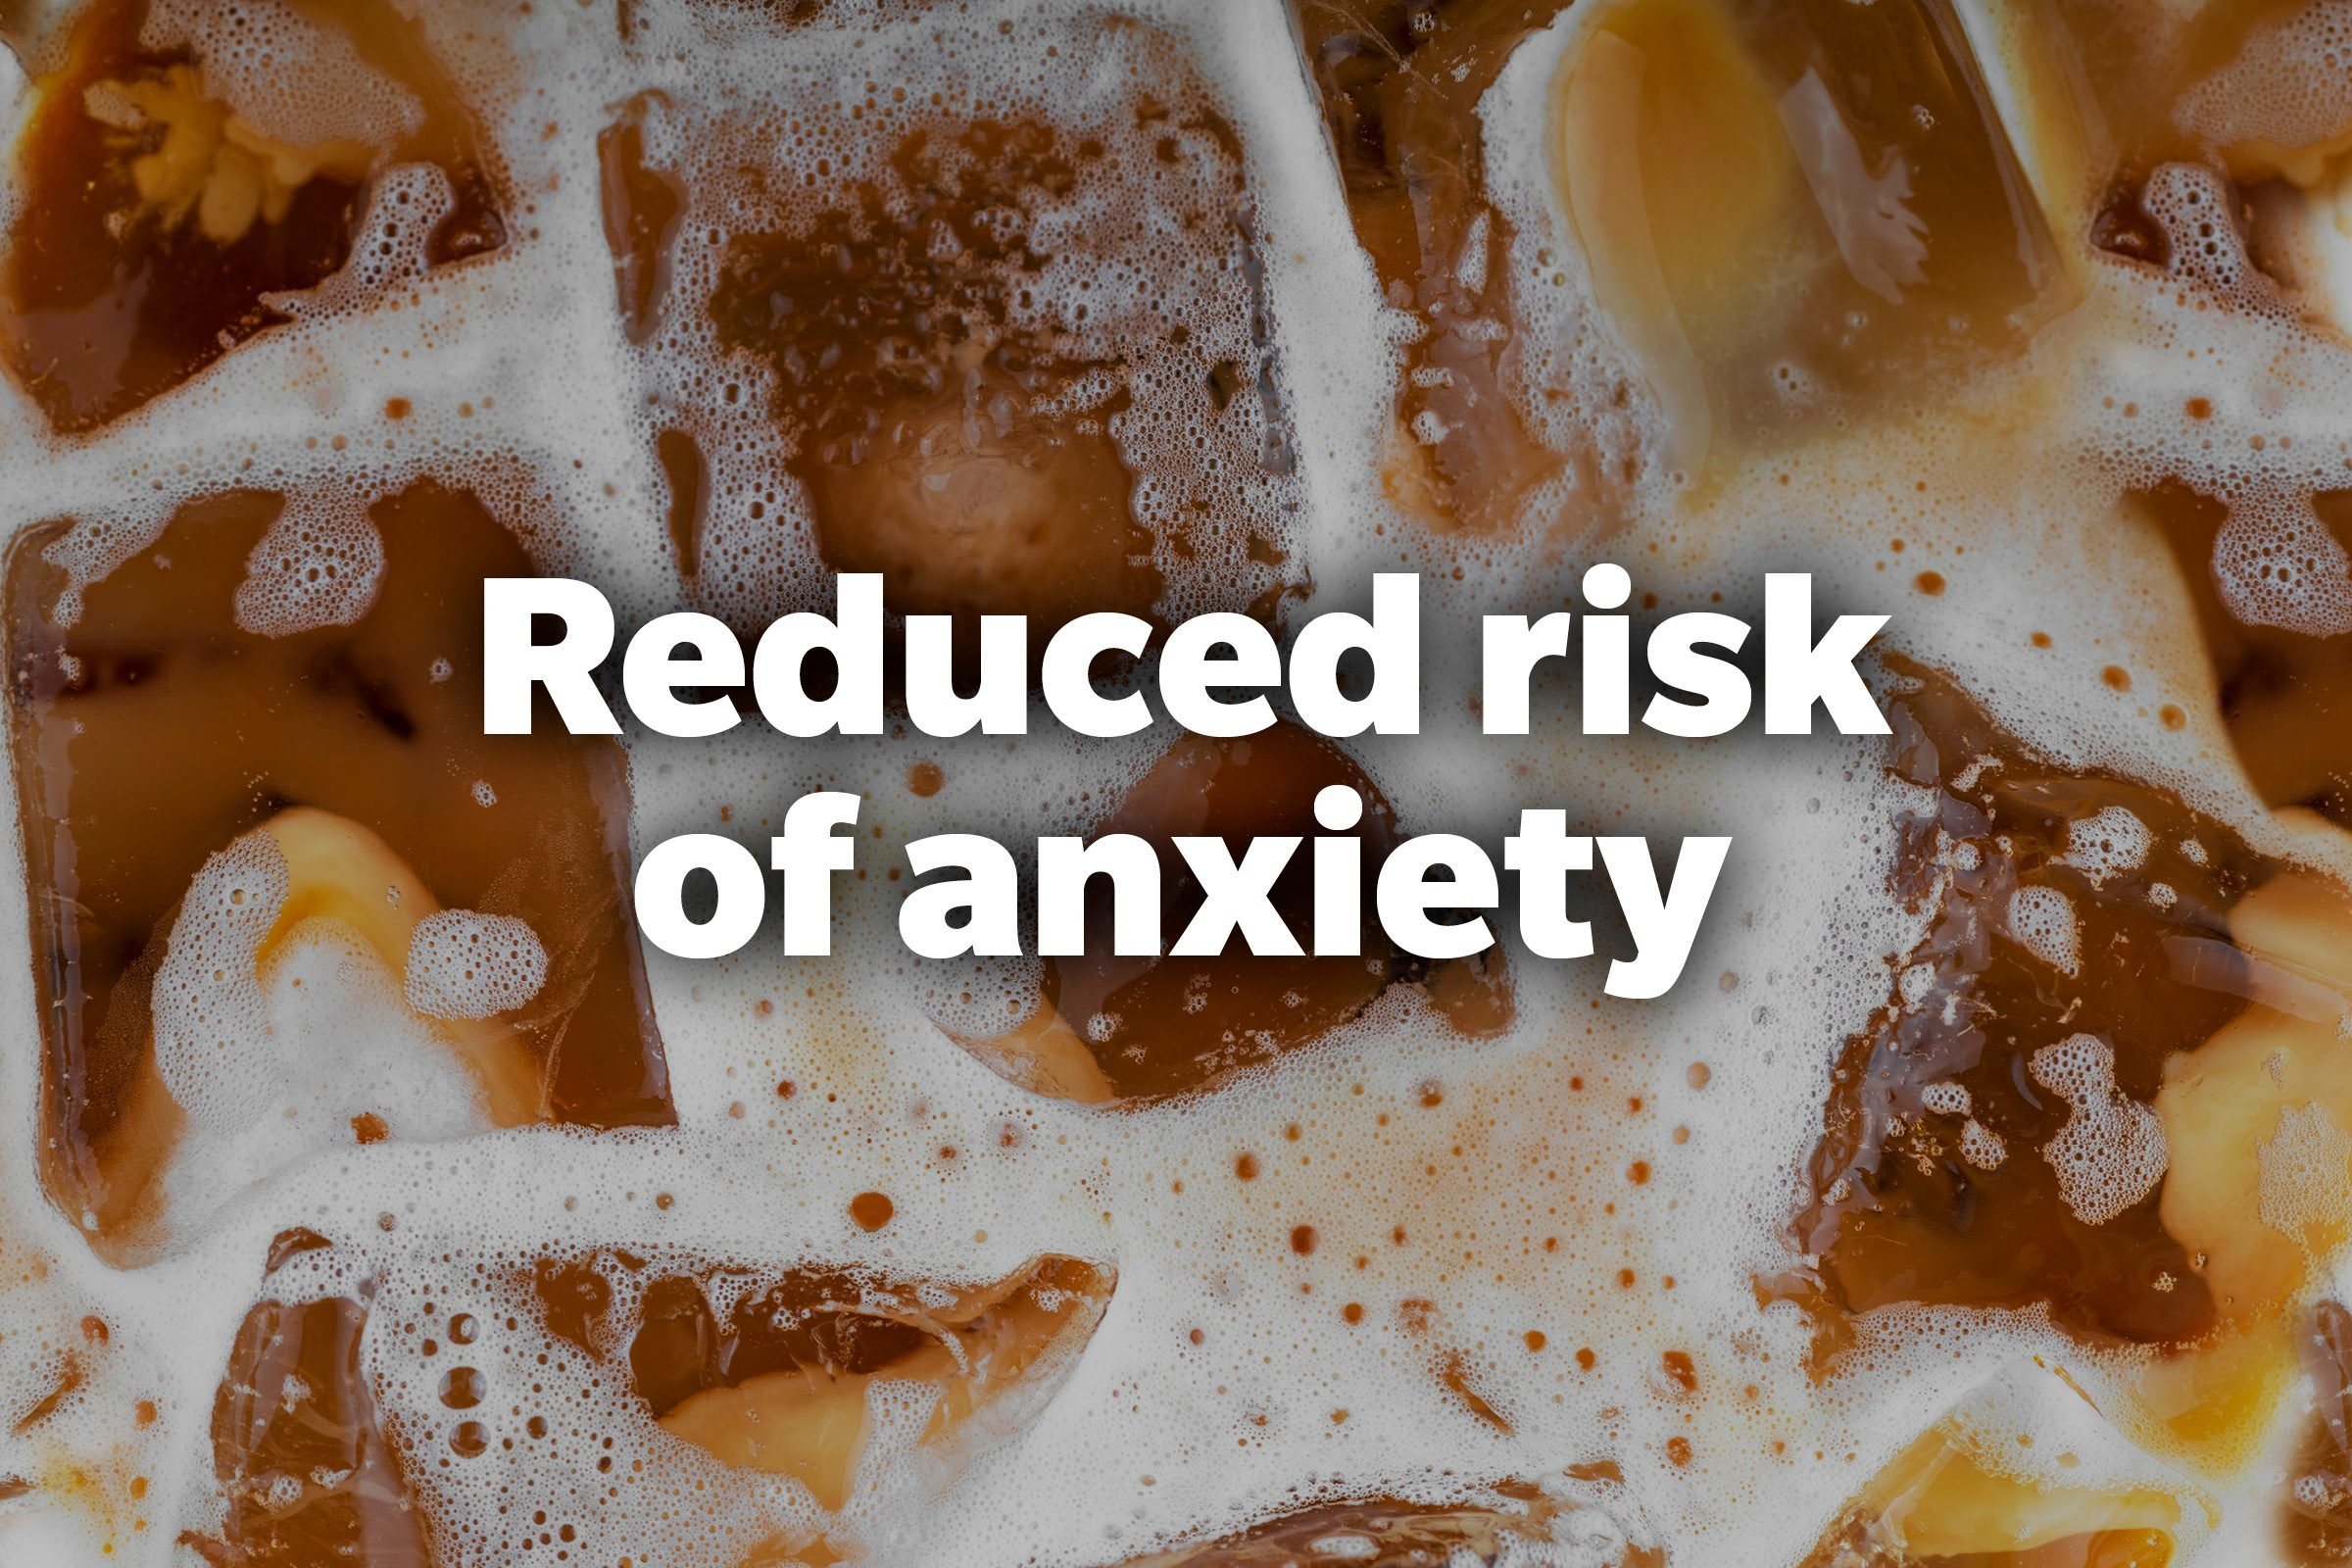 Reduced risk of anxiety